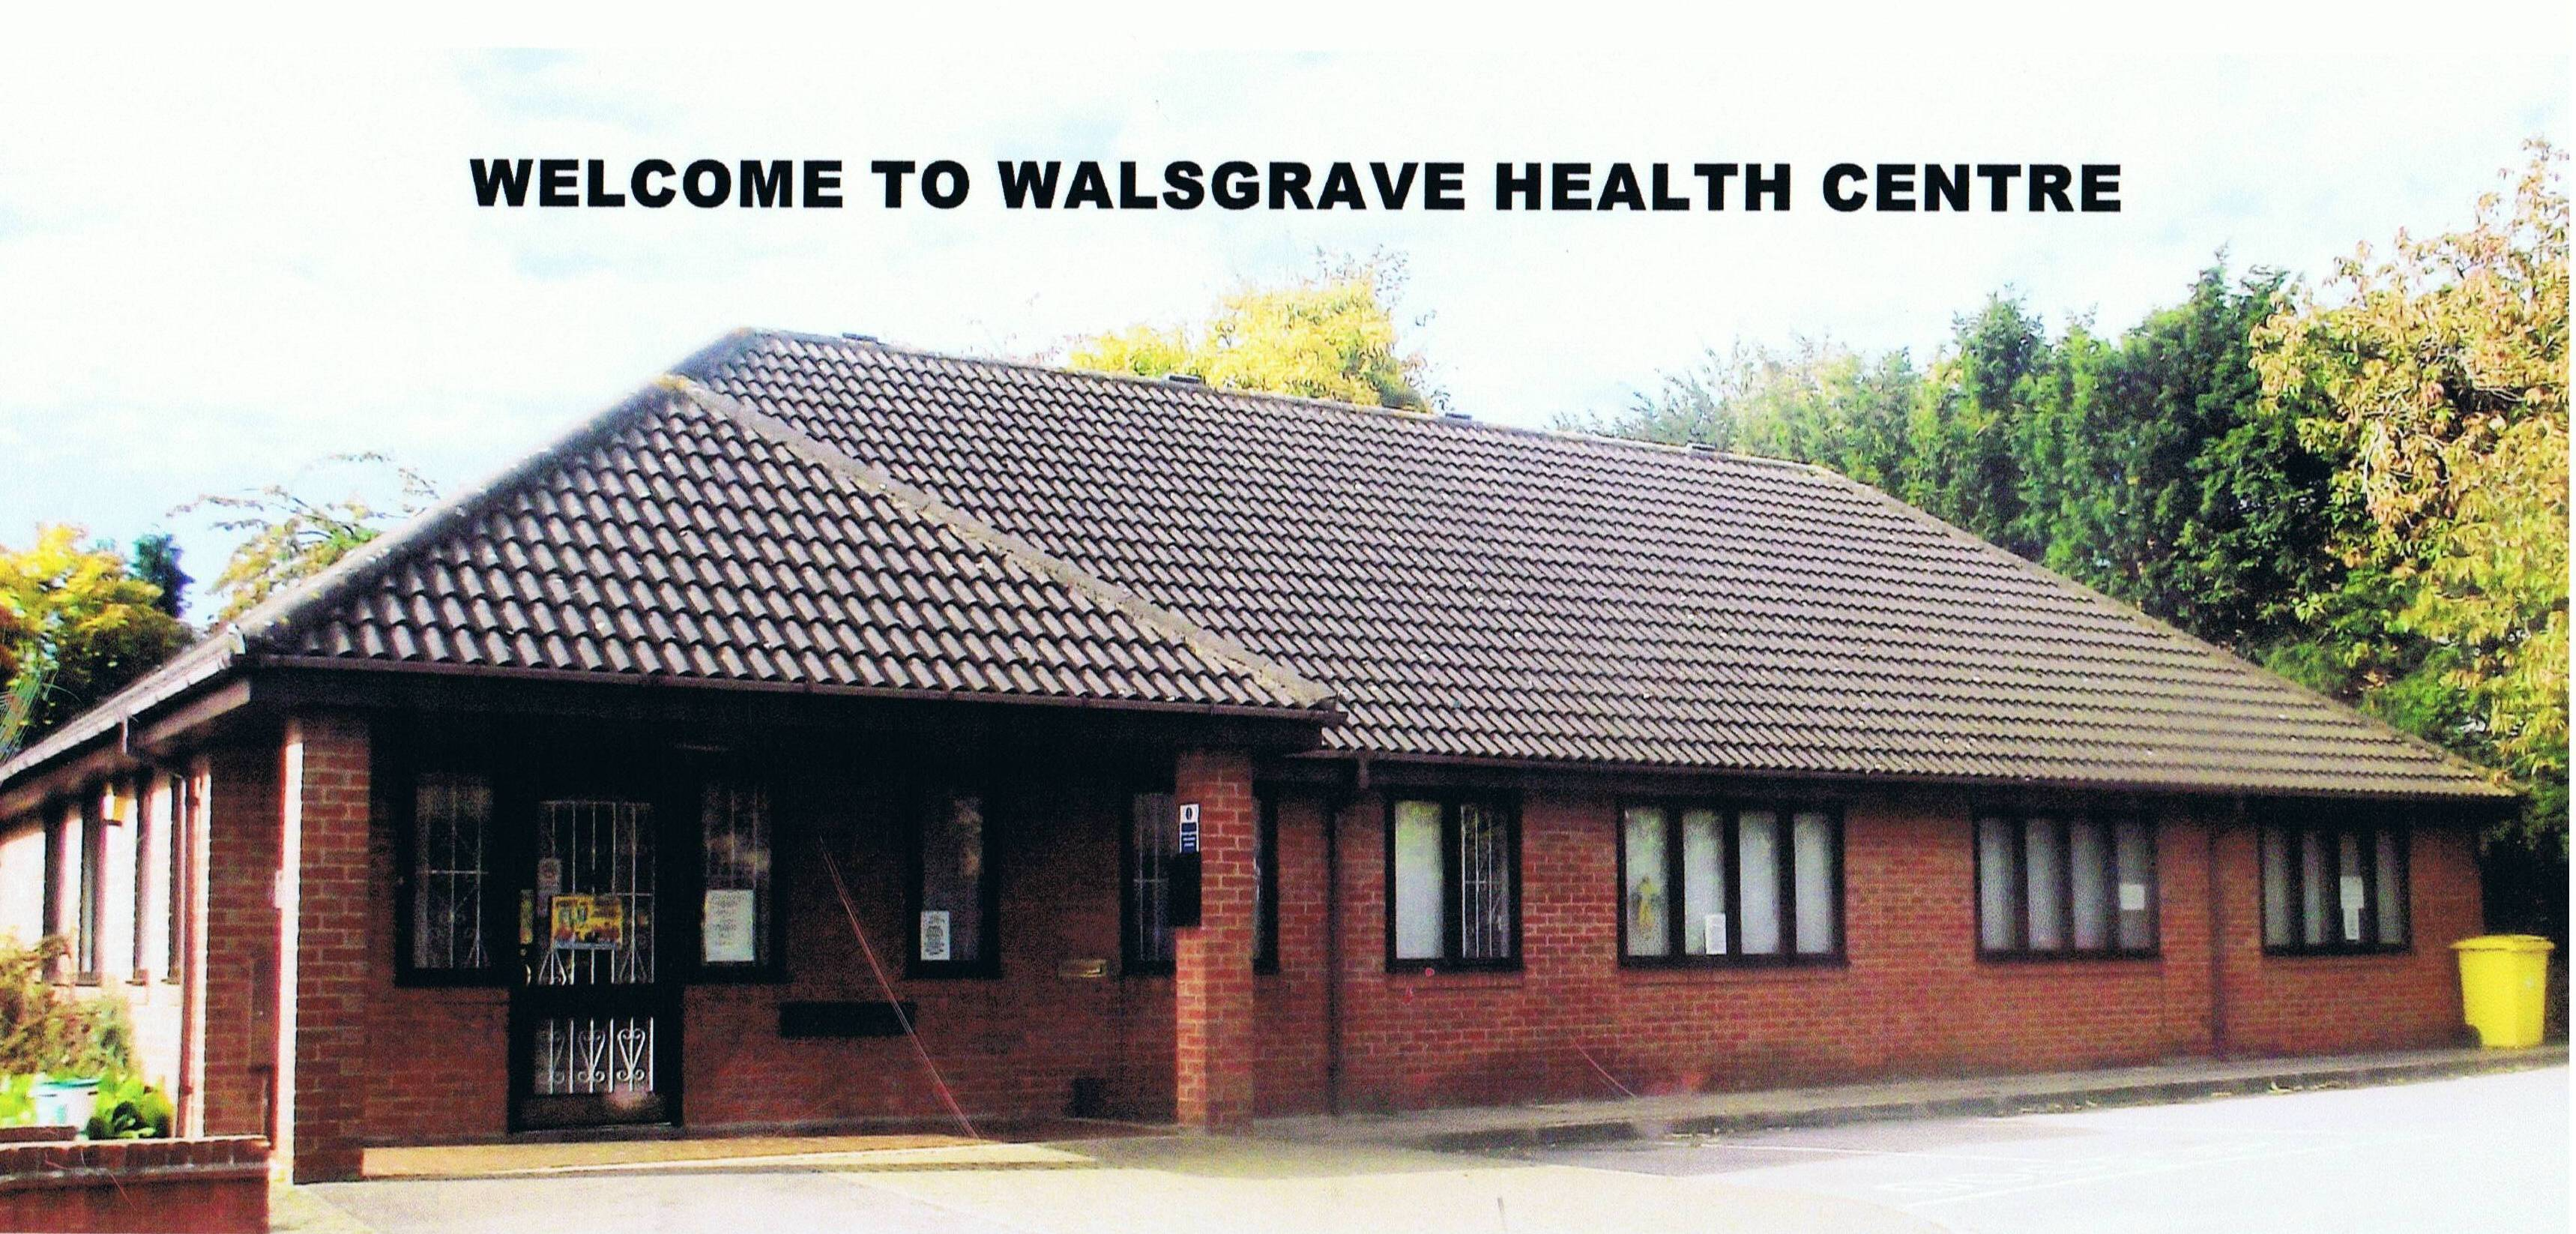 Walsgrave Health Centre